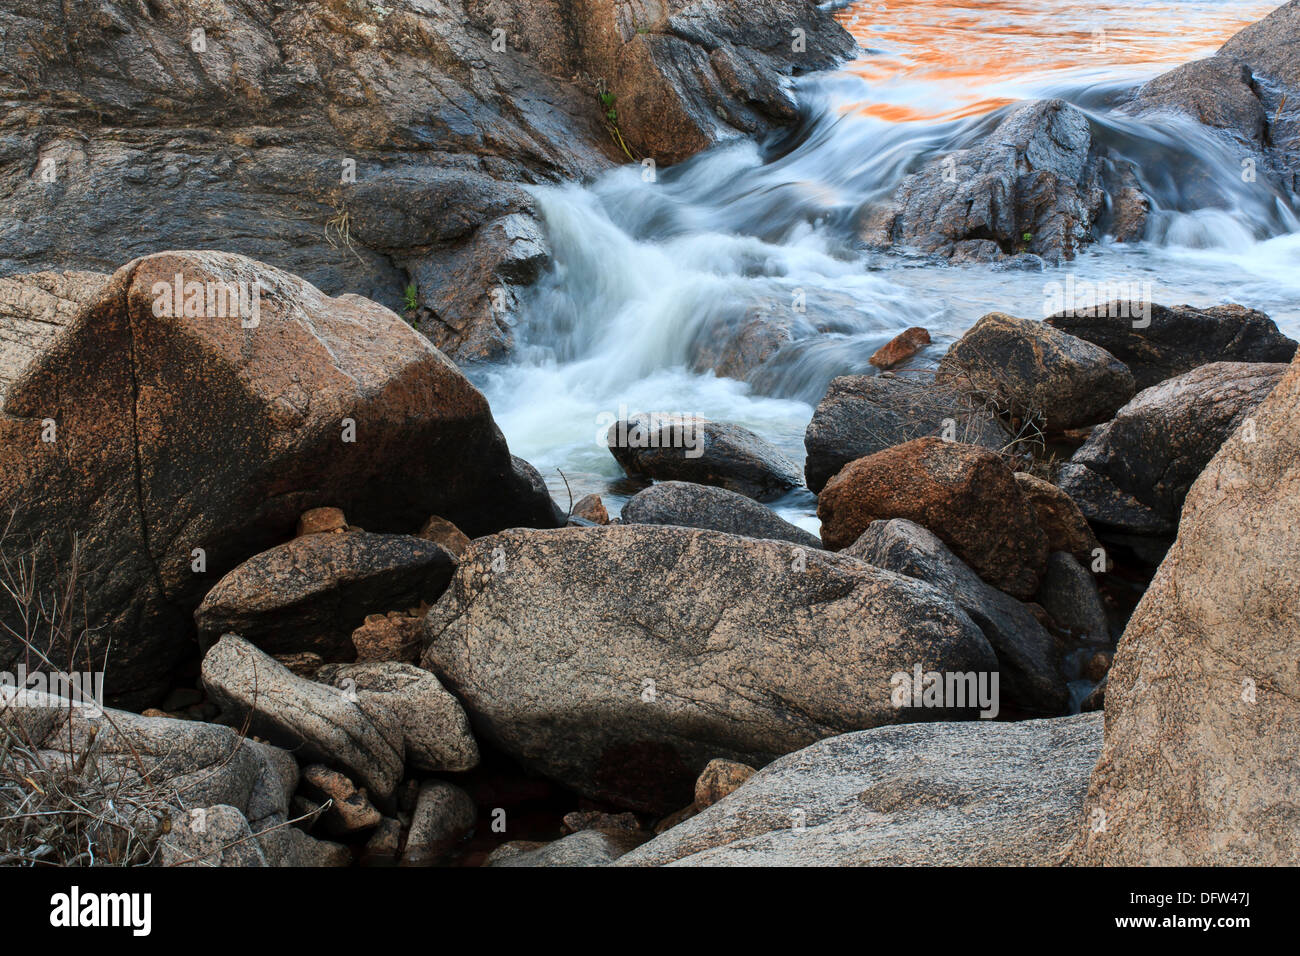 Cascades in Cache Creek in the 40 foot hole in the Wichita Mountains National Wildlife Refuge. - Stock Image